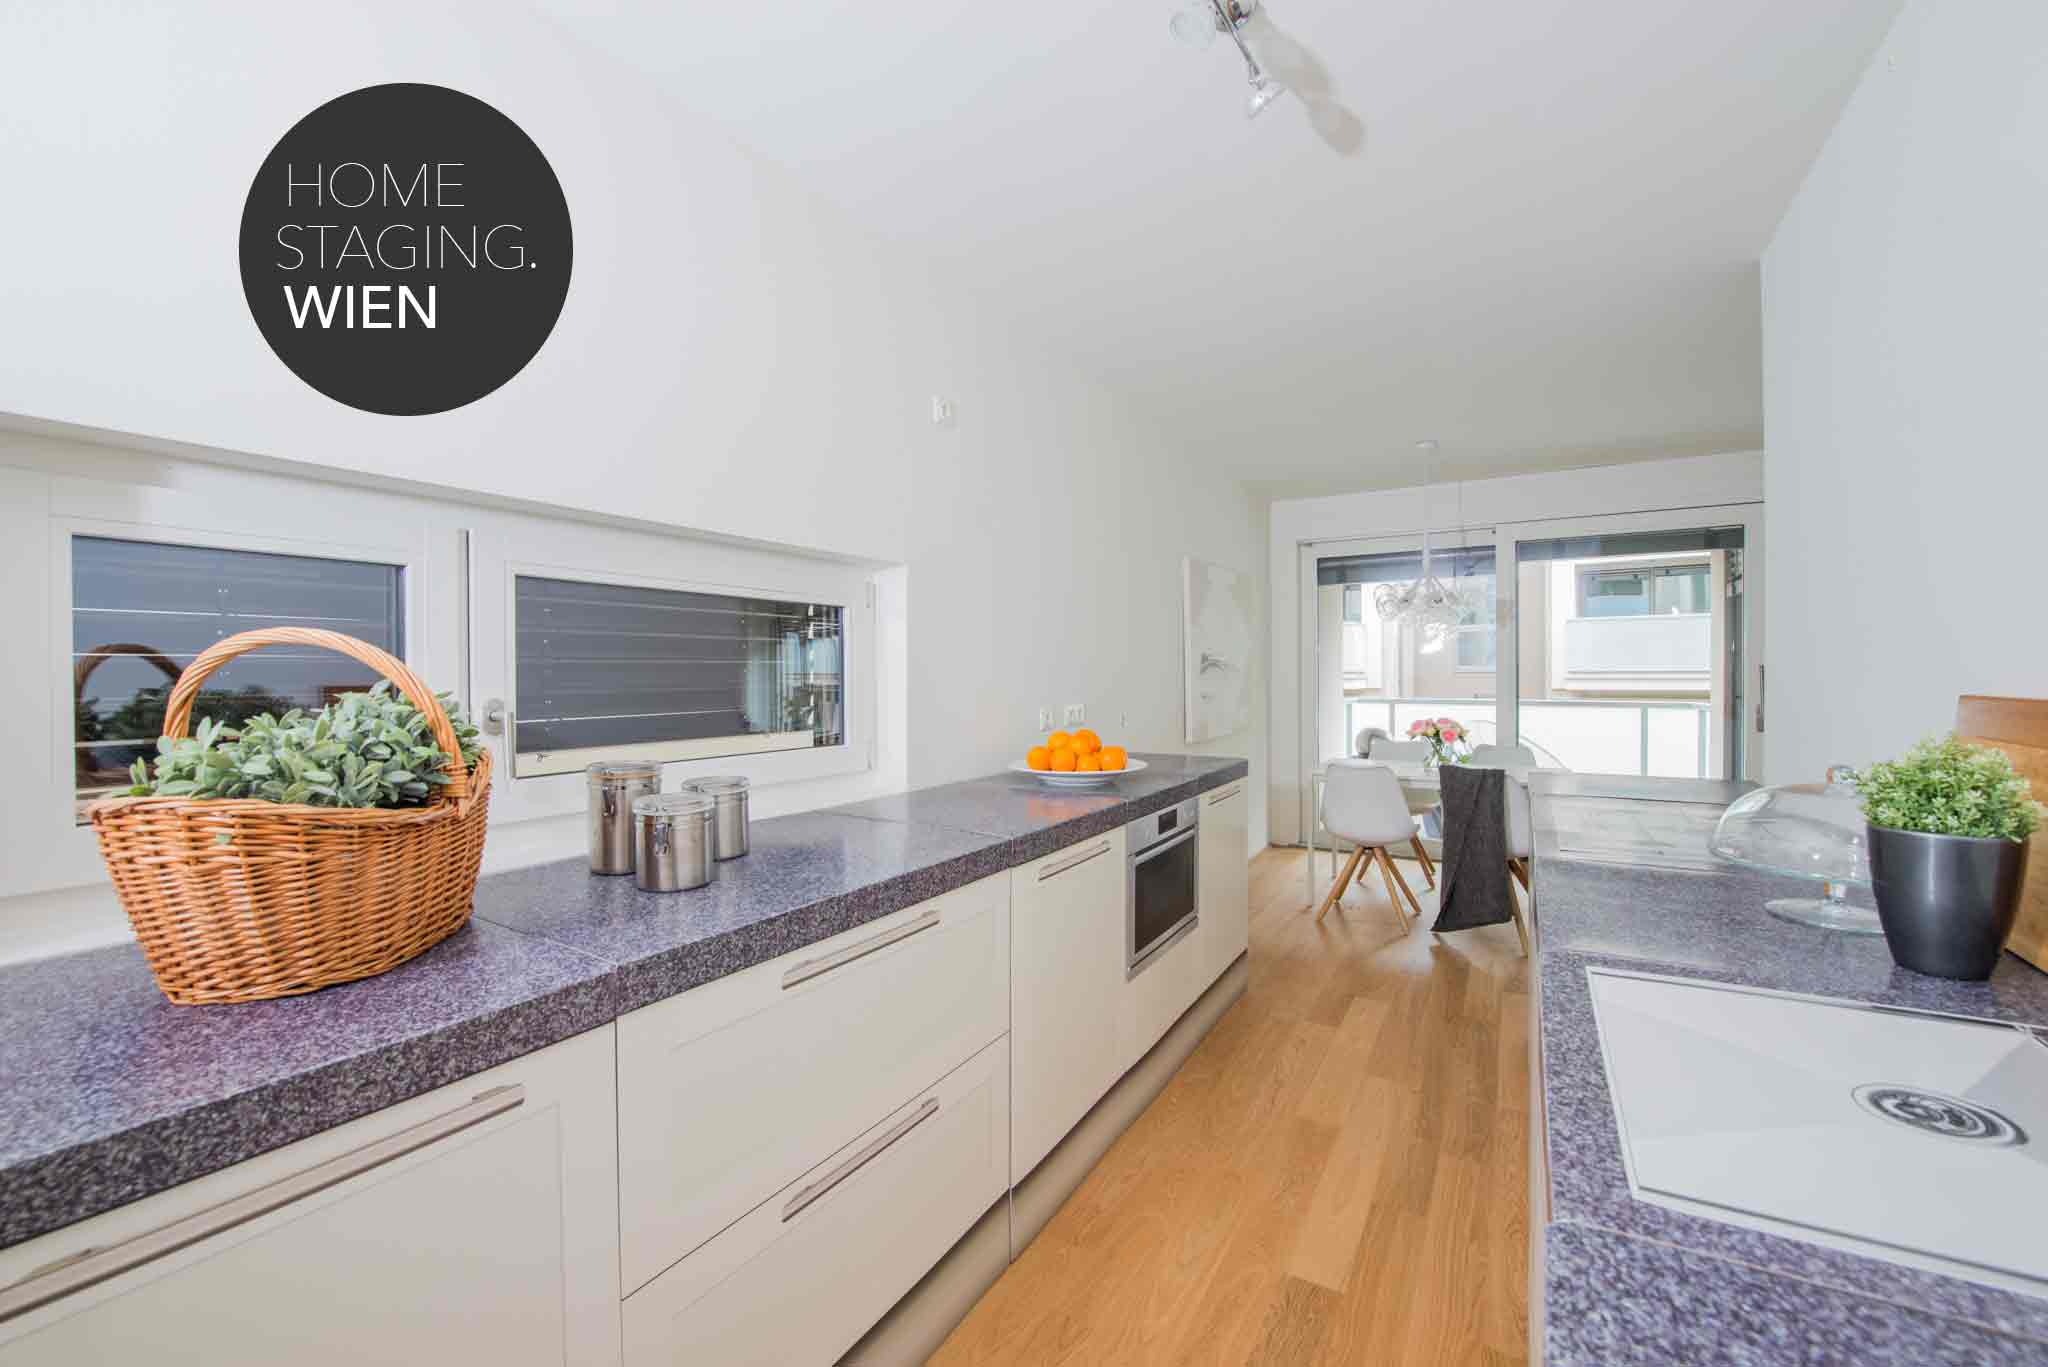 dreamy home « Home Staging Wien